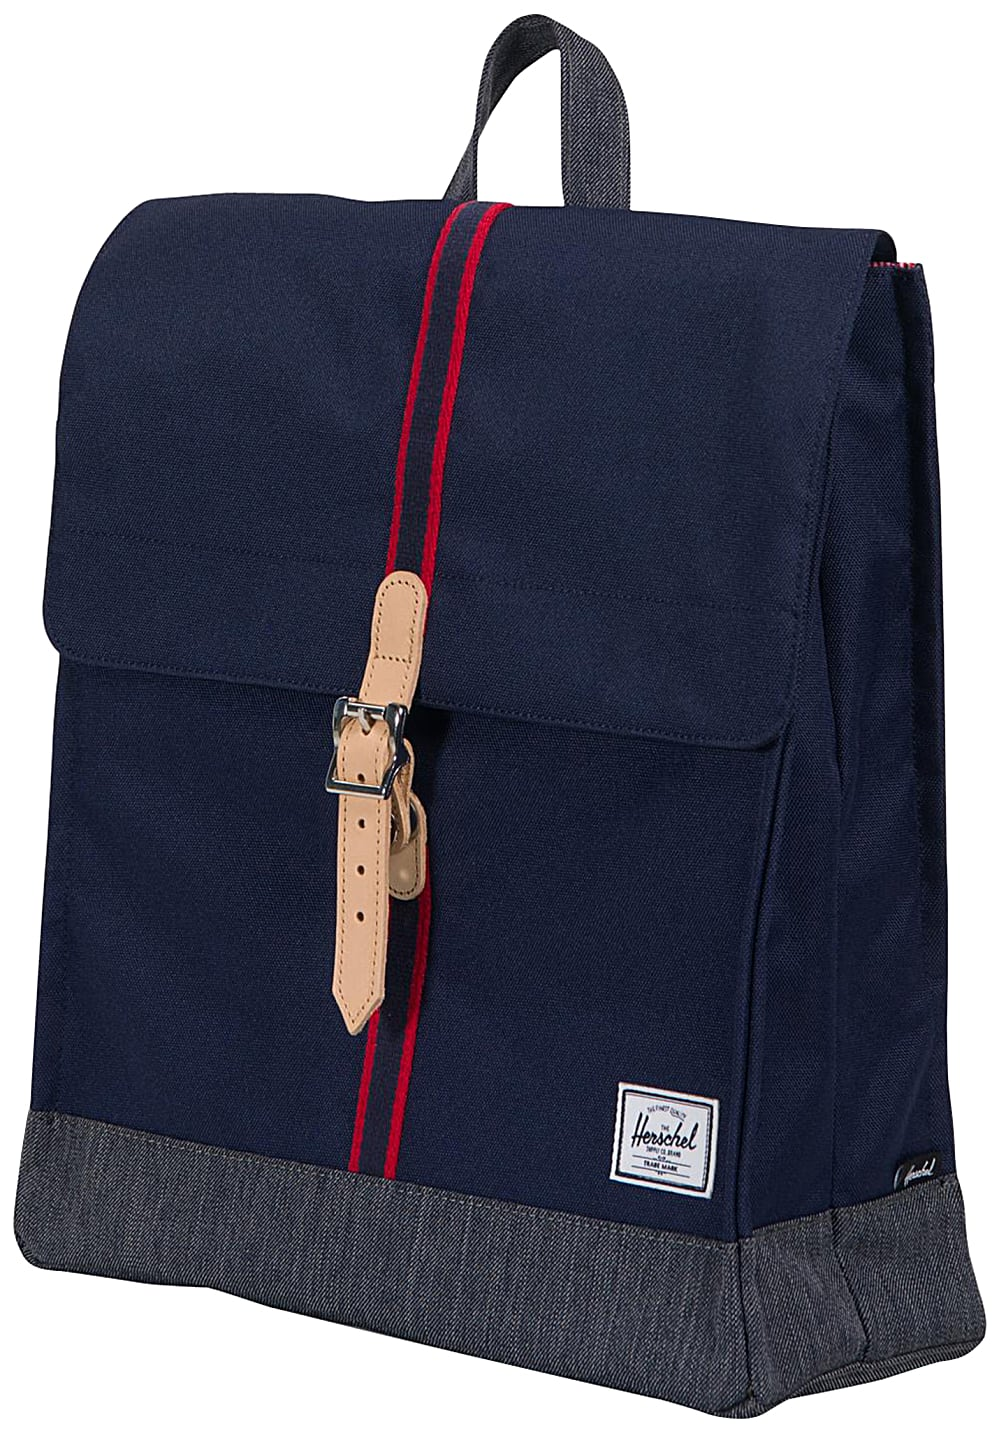 0c2ccf00505 Next. Herschel SUPPLY CO. City Mid 14L - Backpack. €79.95. incl. VAT plus  shipping costs